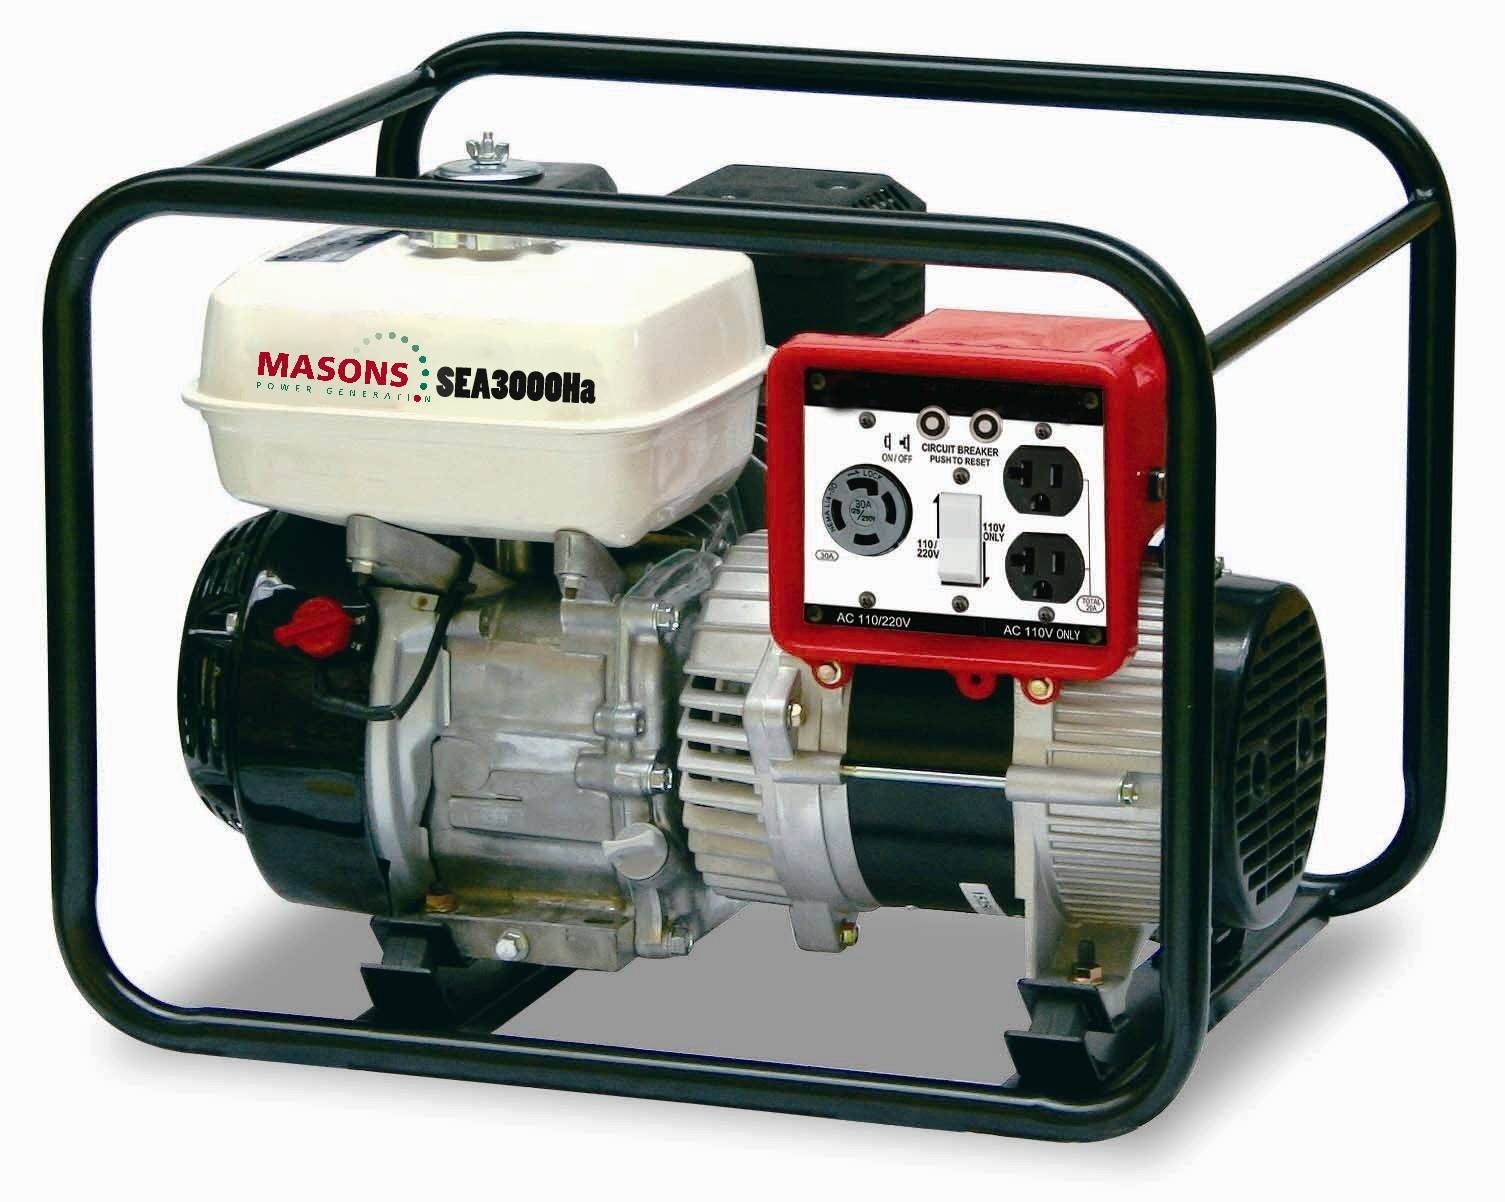 Masons 2800W 50/60Hz portable gasoline generators